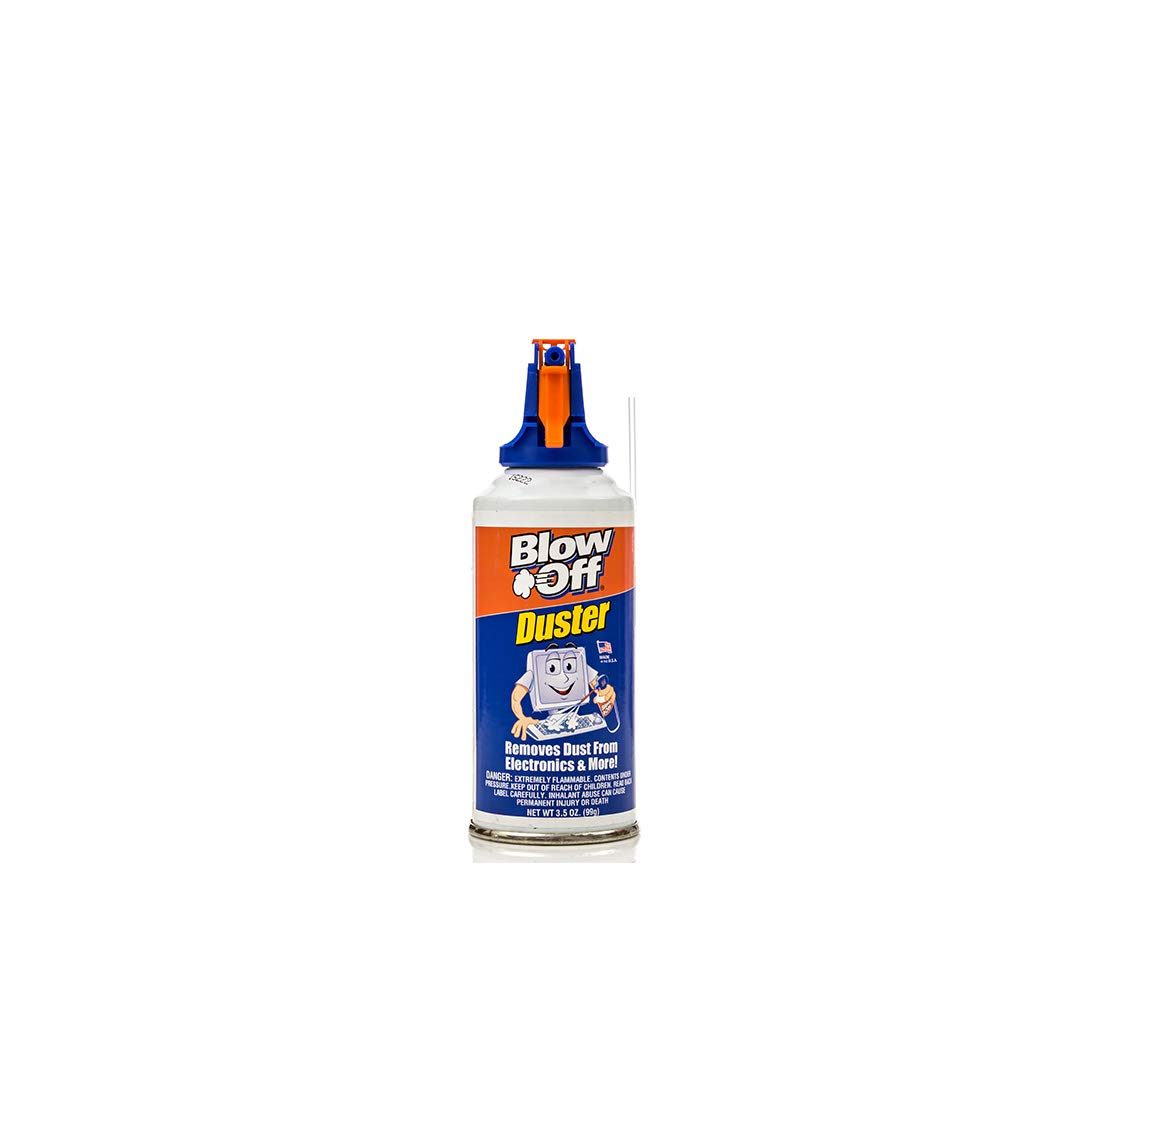 Compressed Air Duster Can MAX Professional Cleaner 1111 Blow Off Non-toxic & No Bitternt 8oz. Stop the Build-up of Dust in Your Electronics, Clogging up the Cooling Fan. Pack of 2 MAX-Professional LYSB01E4JO1K2-CMPTRACCS